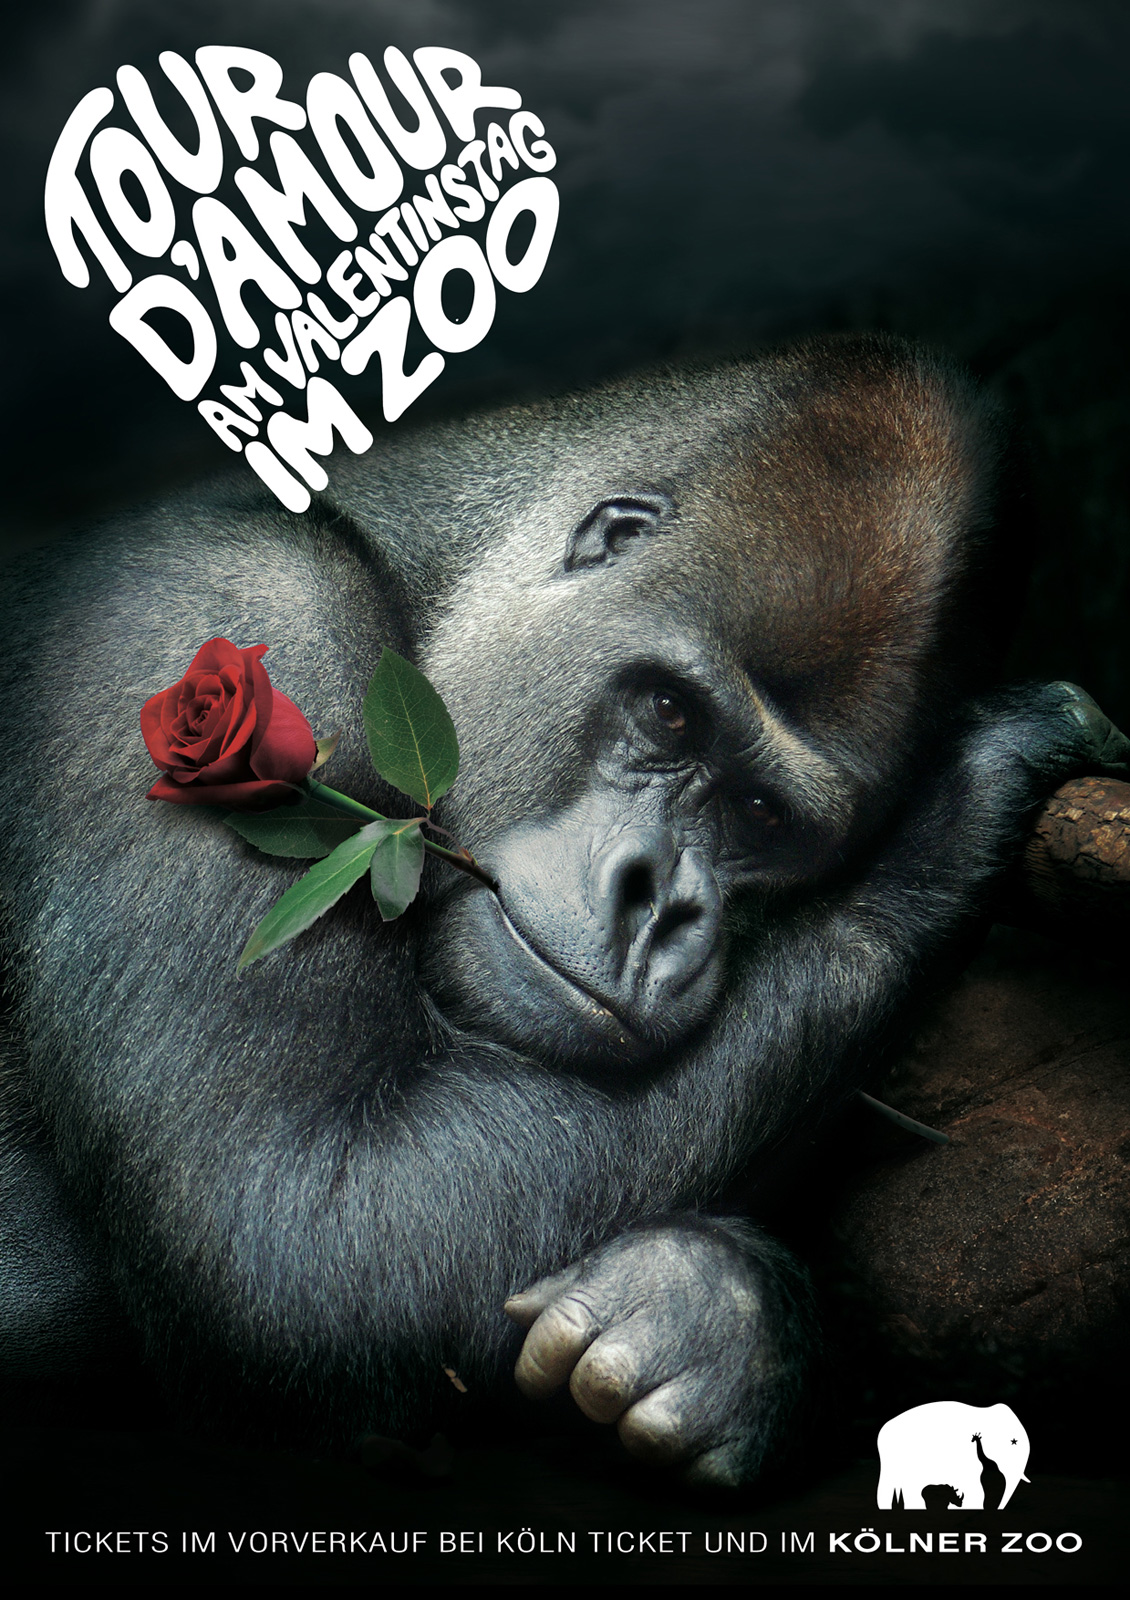 llllitl-kolner-zoo-koln-allemagne-deutschland-advertising-publicité-animals-saint-valentin-day-2